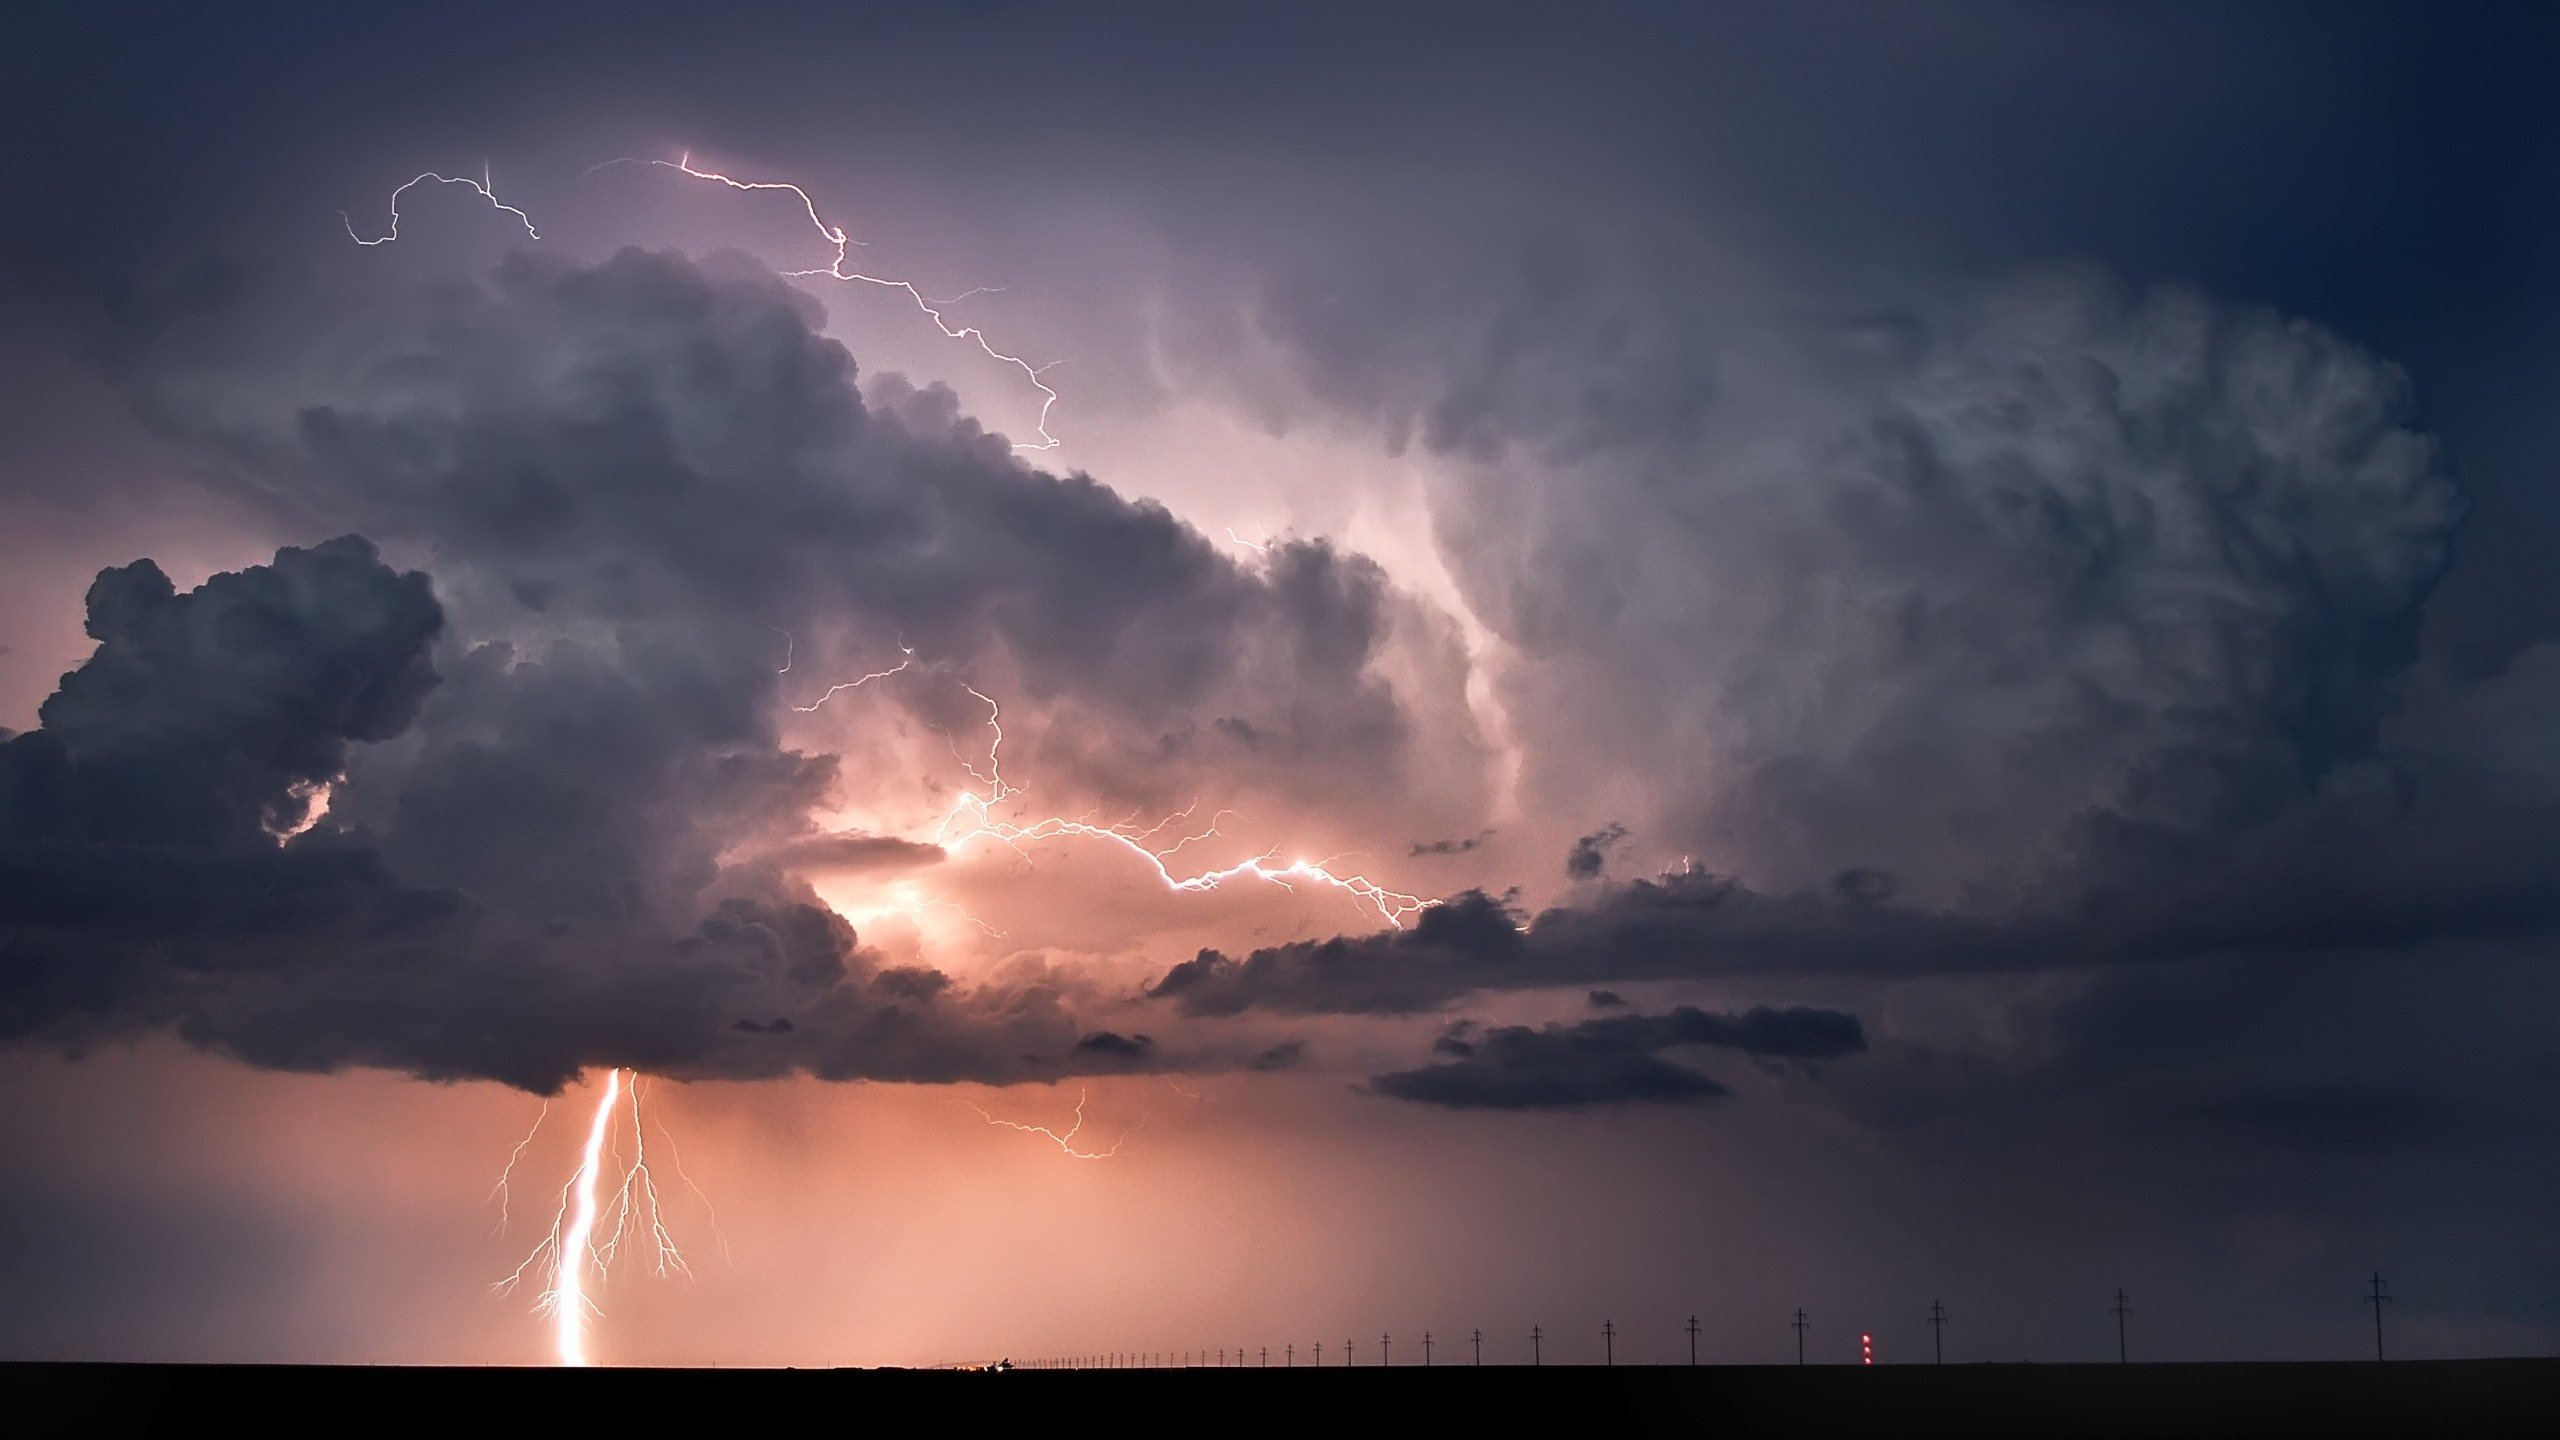 thunderstorm lightning 2560x1440 Wallpapers HD Widescreen Desktop 2560x1440